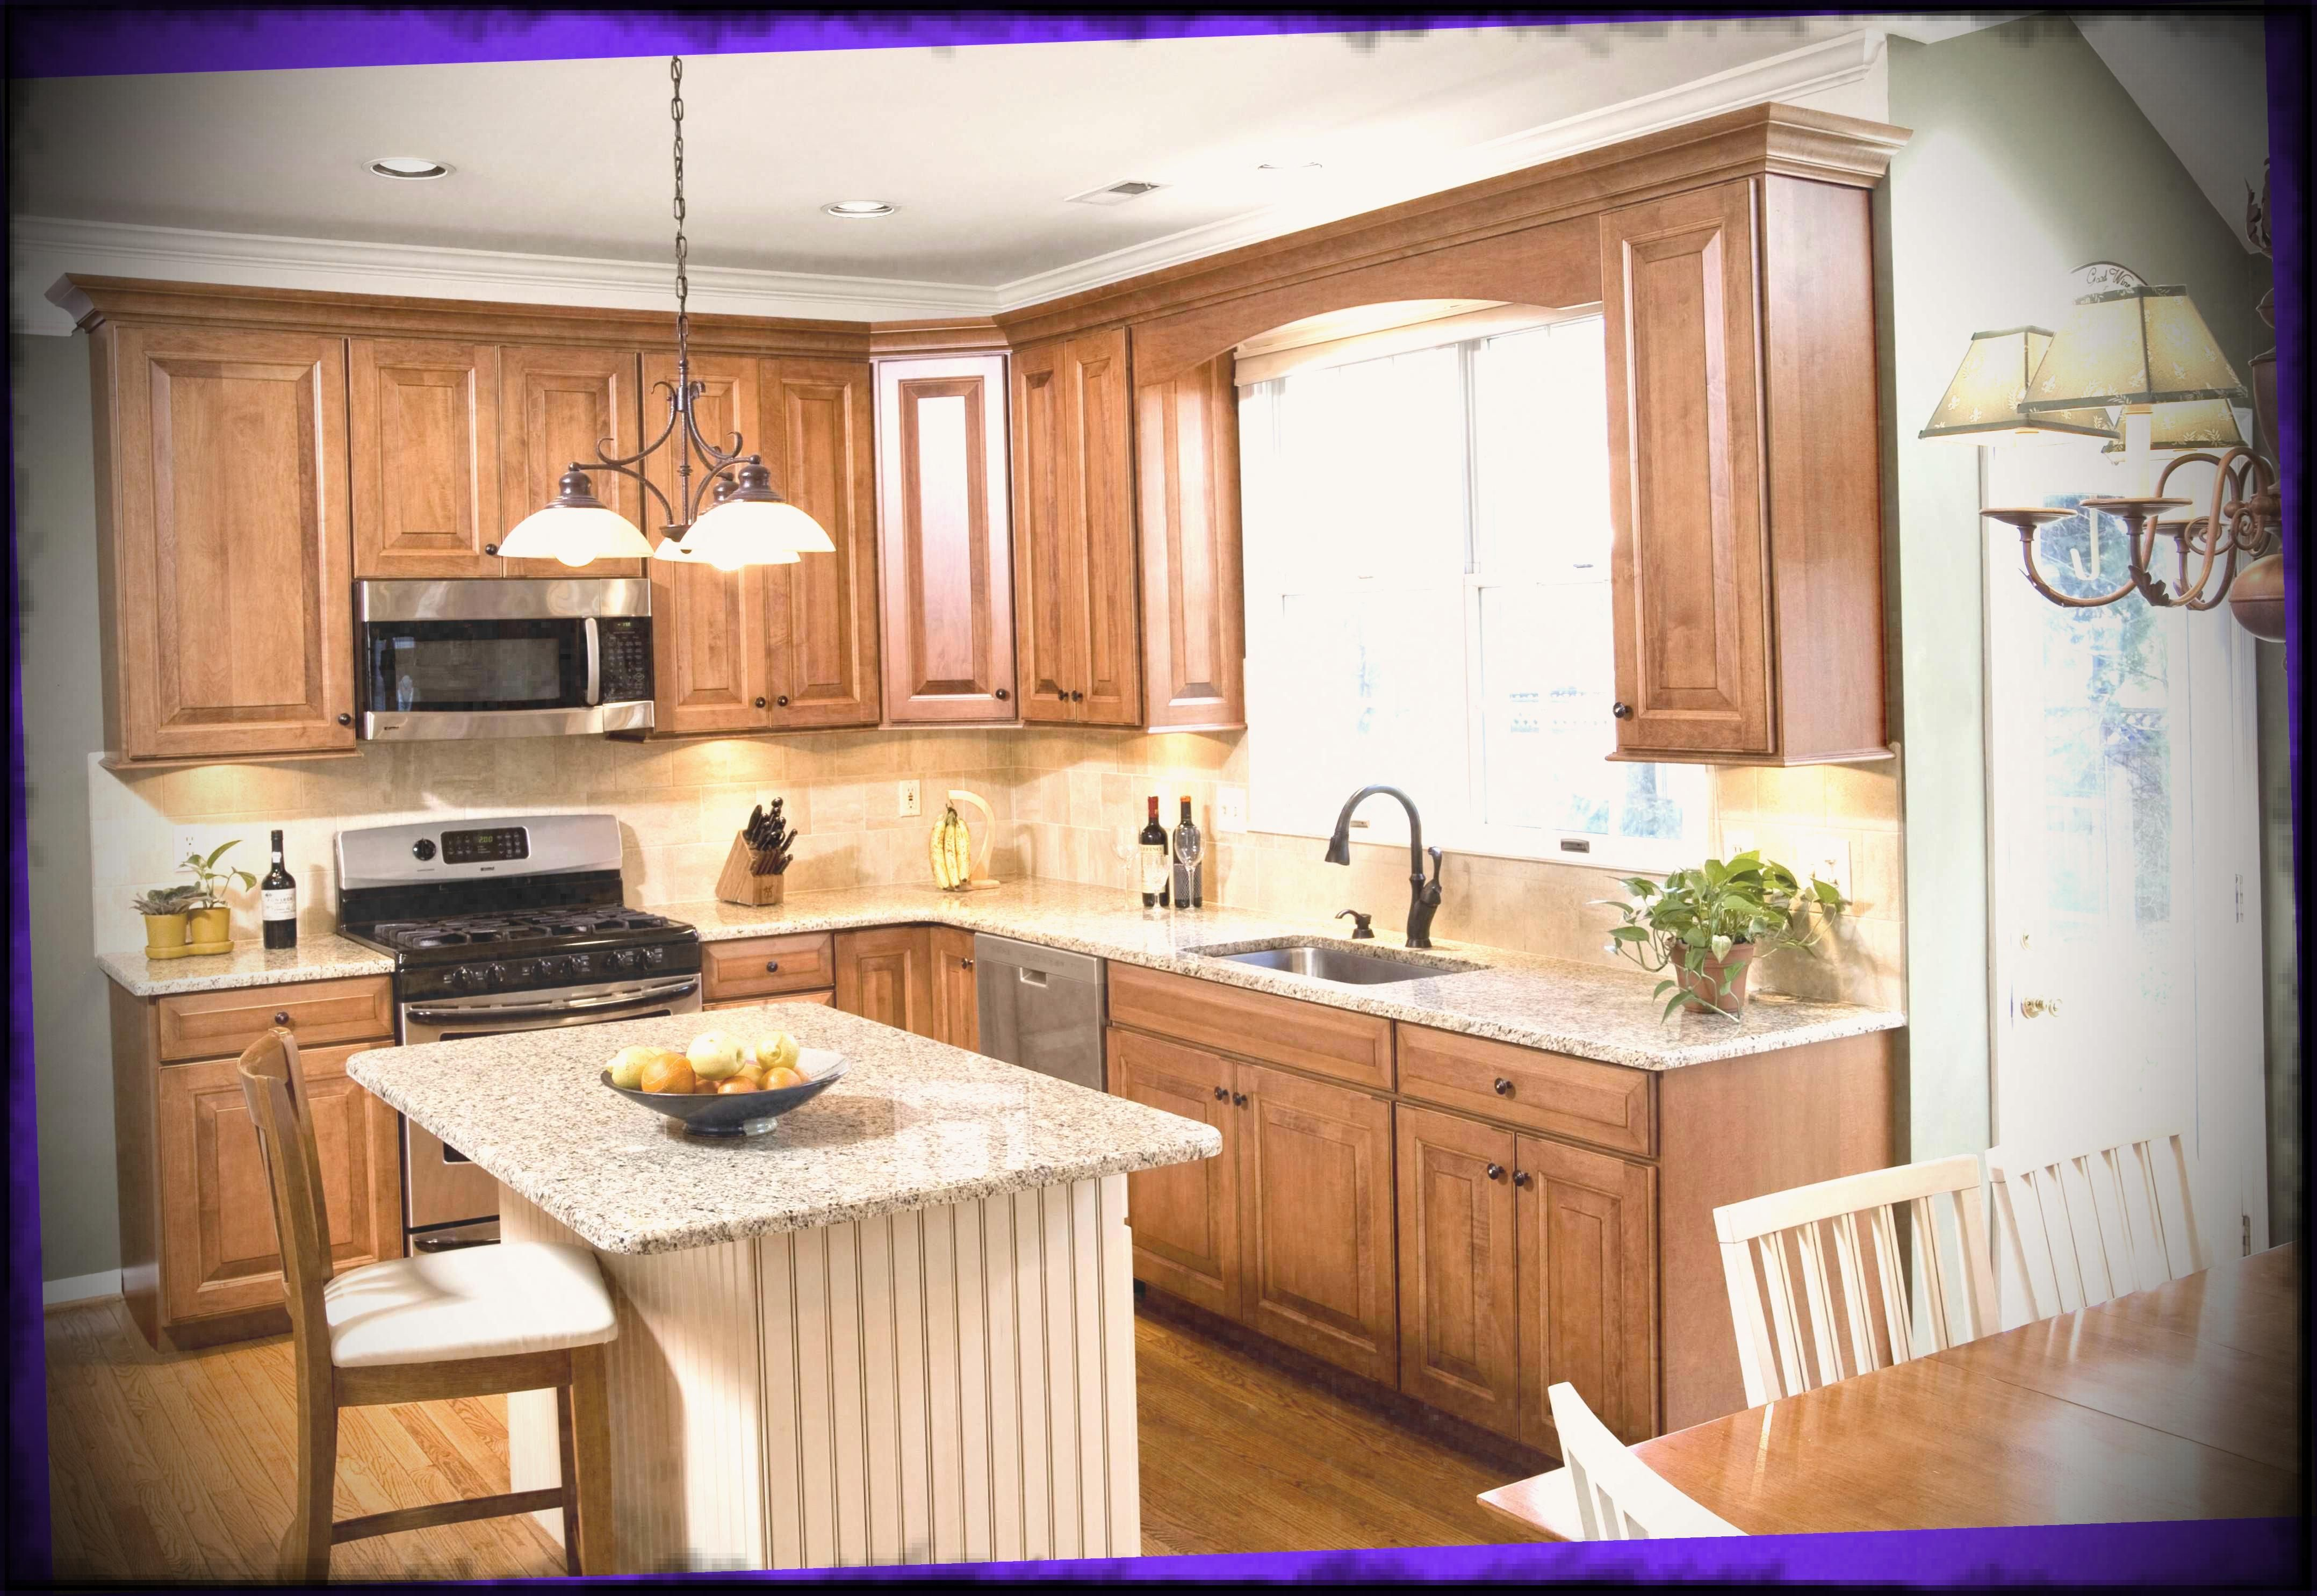 Design kitchen peninsula ideas for small room u shaped designs kitchens advantages l indian